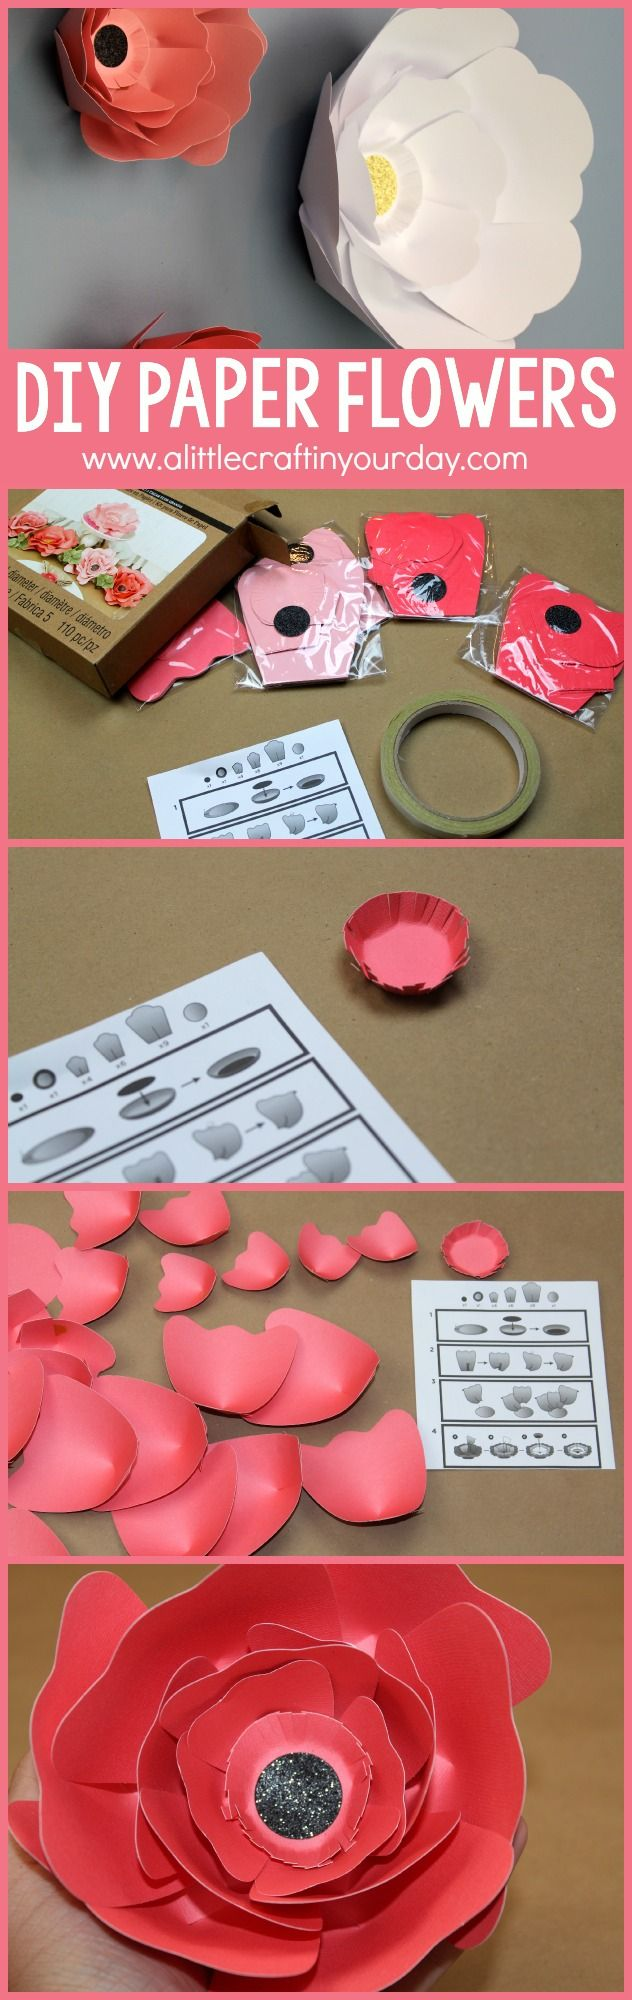 The 3138 Best Tuts For Paper Crafting Images On Pinterest Paper